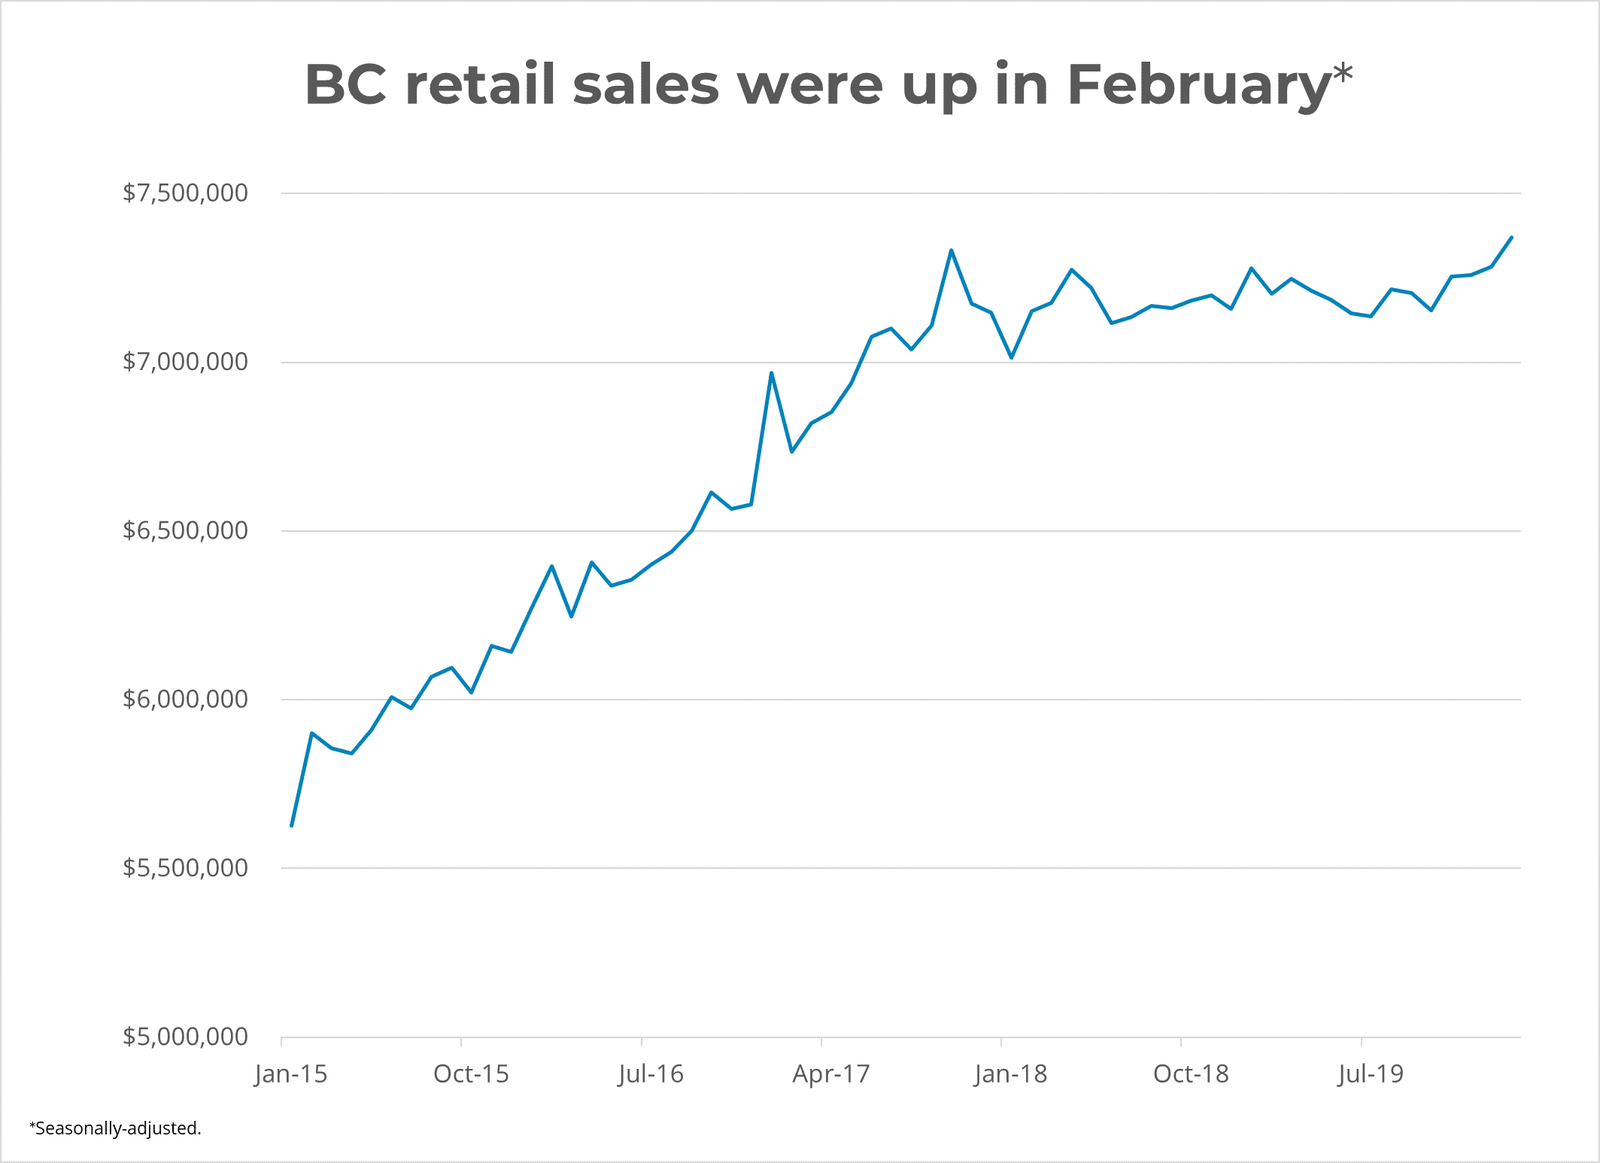 BC Retail Sales Up In February